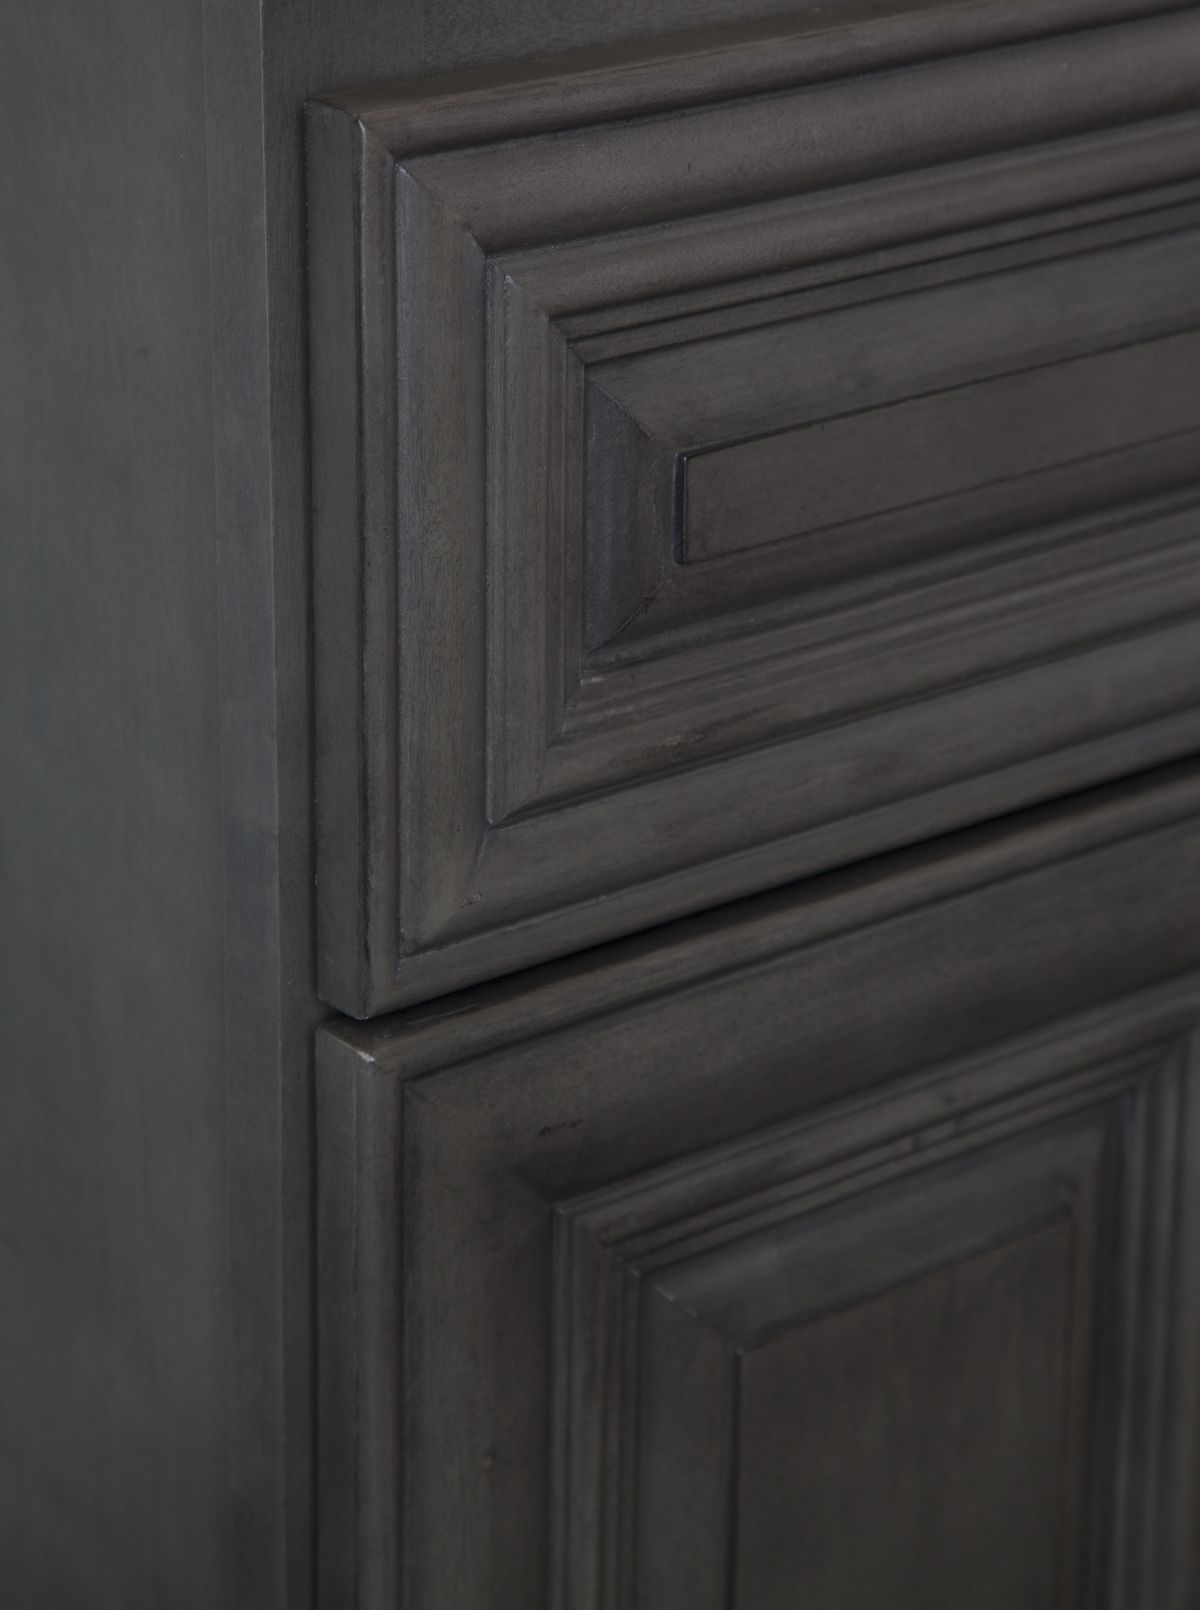 Kensington Kitchen Cabinets: Kensington Mist (Dark Grey) Raised Panel Cabinets For